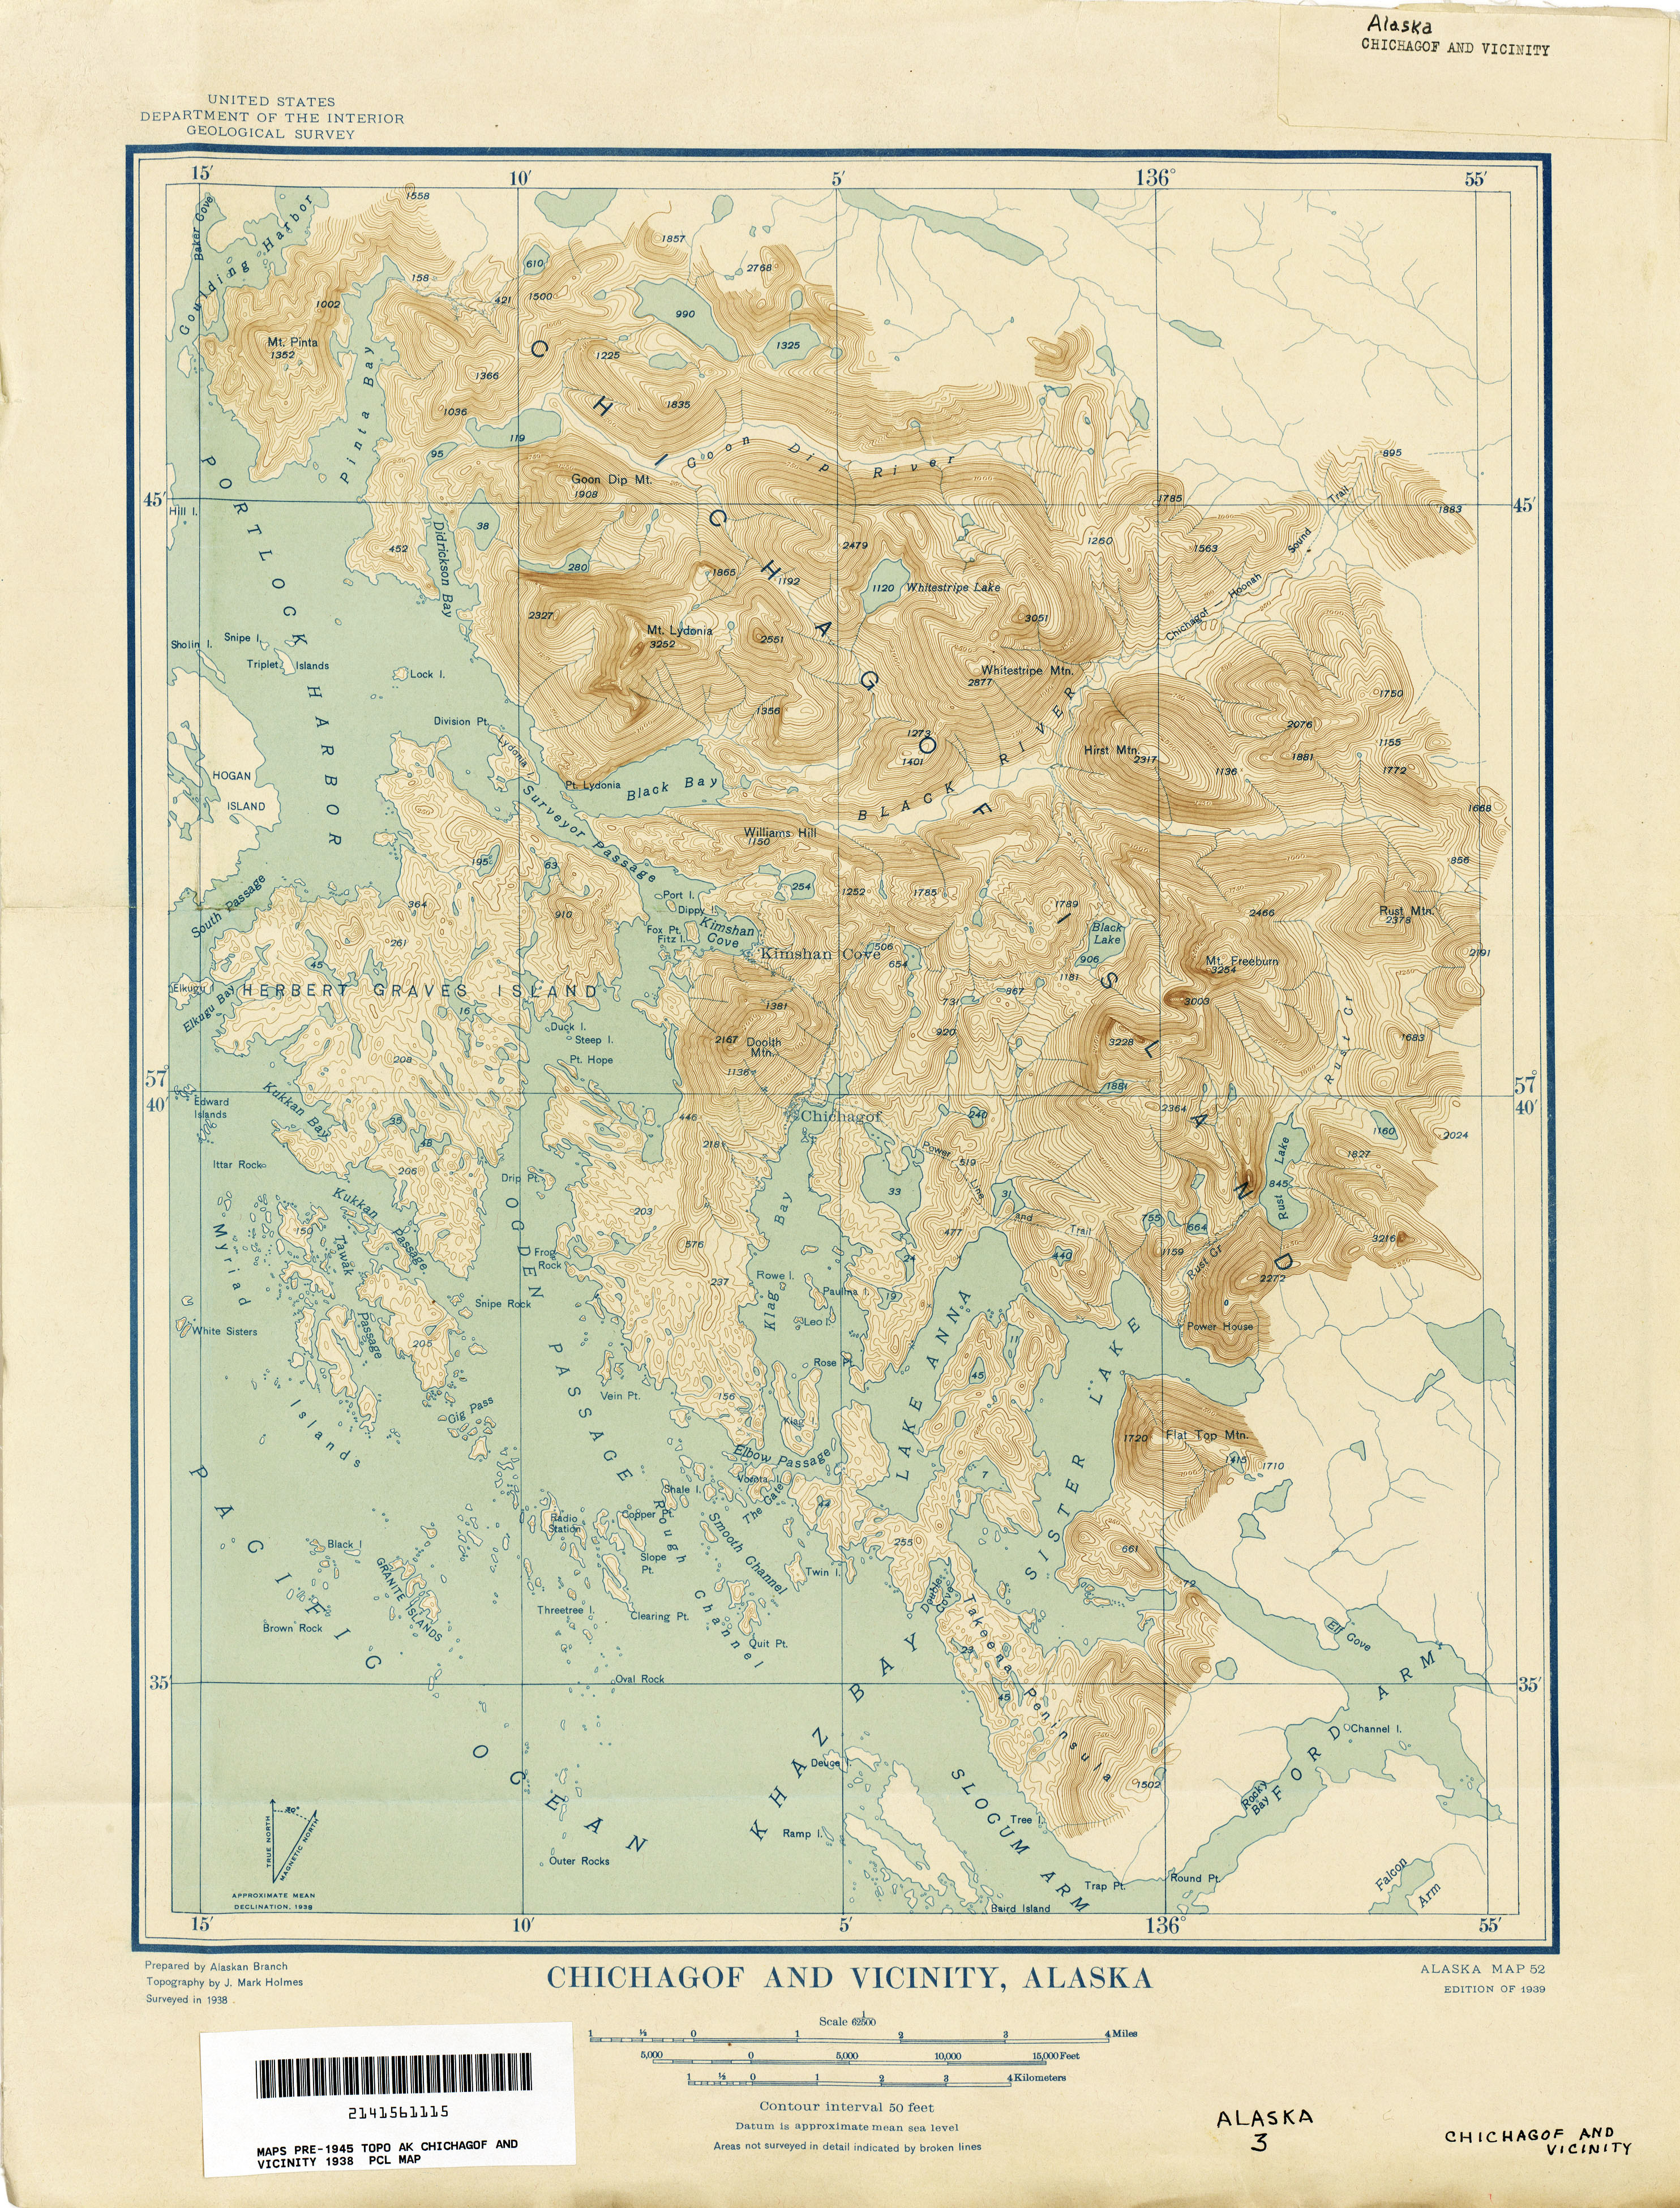 txu-pclmaps-topo-ak-chichagof_and_vicinity-1938 Map Of Alaska And Russia on map of alaska and japan, department of alaska, map of alaska and its cities, great northern expedition, map of alaska and northwest territories, map of alaska and united states, grigory shelikhov, bering strait, map from alaska to russia, physical map of russia, map of alaska and ecuador, how close is alaska to russia, vitus bering, map of alaska and world, prehistory of alaska, fort ross, map of alaska and washington state, russo-american treaty, maritime fur trade, battle of sitka, map of alaska and antarctica, innocent of alaska, a map of russia, bering strait bridge, russian fort elizabeth, british colonization of the americas, map of alaska and greenland, current map of russia, alaska purchase, european colonization of the americas, new sweden, alta california, district of alaska, map of alaska and british columbia, bering strait map alaska russia, map of alaska and australia, map of alaska and canada, map of europe, map of alaska and arctic circle,